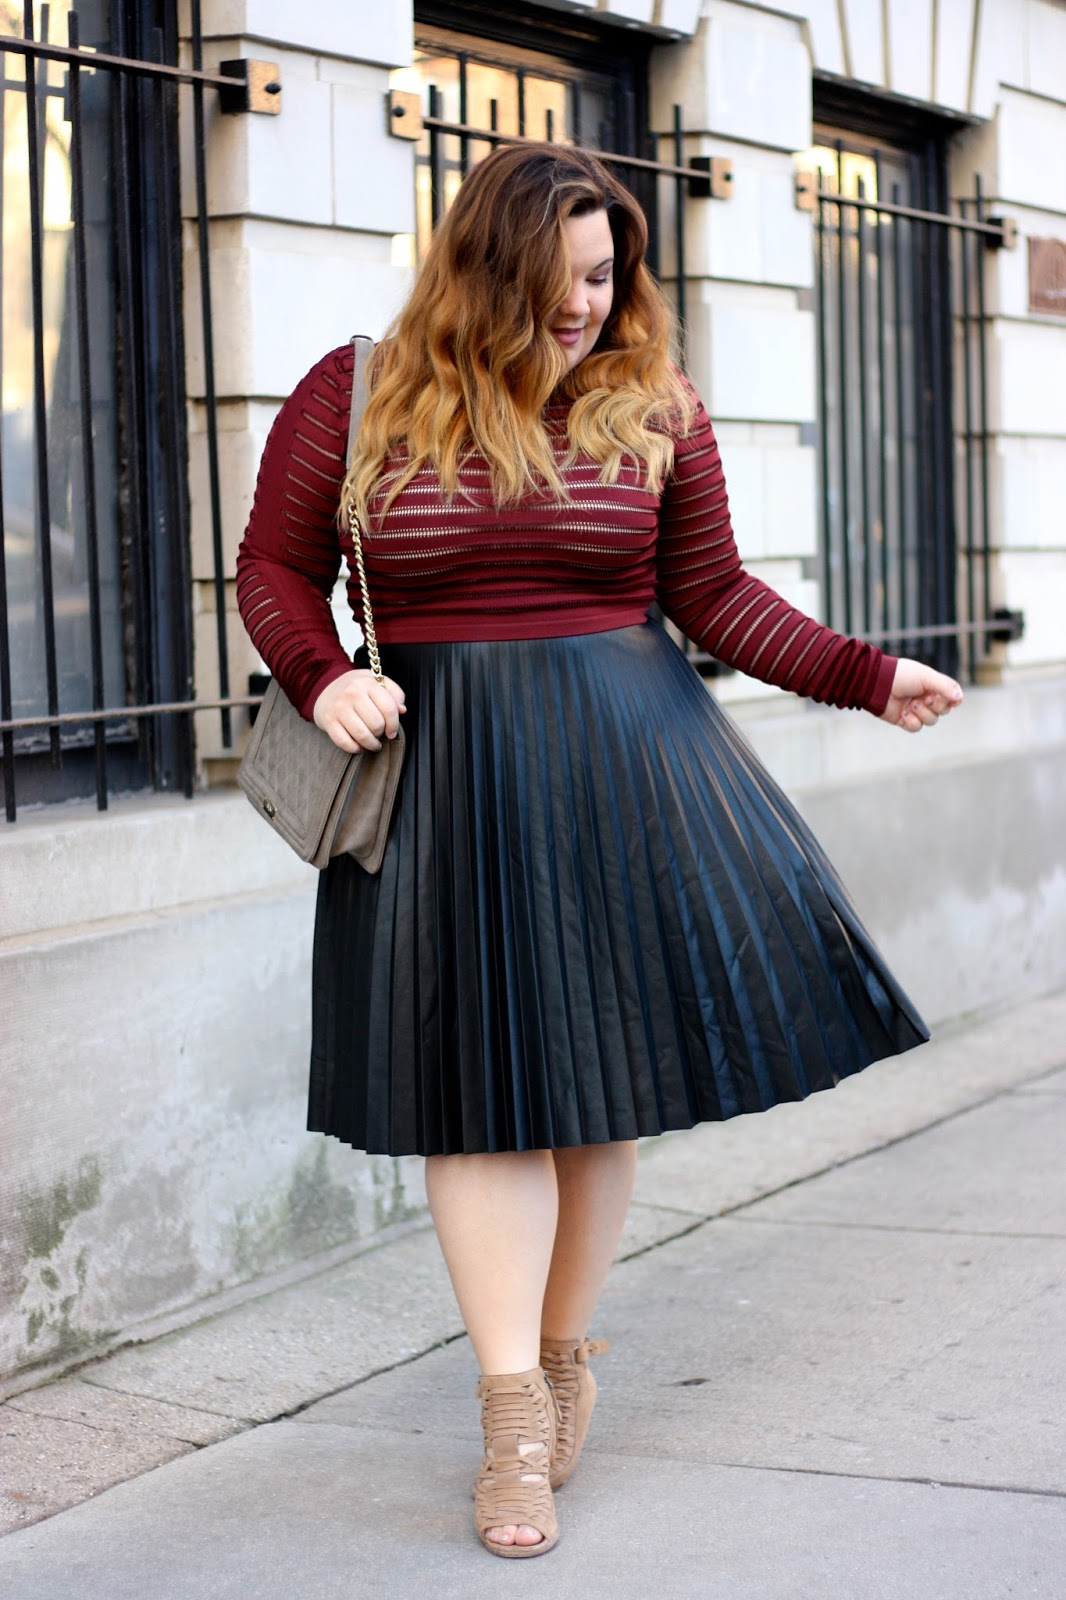 LEATHER PLEATS | Natalie in the City - A Chicago Plus Size Fashion Blog, by Natalie Craig